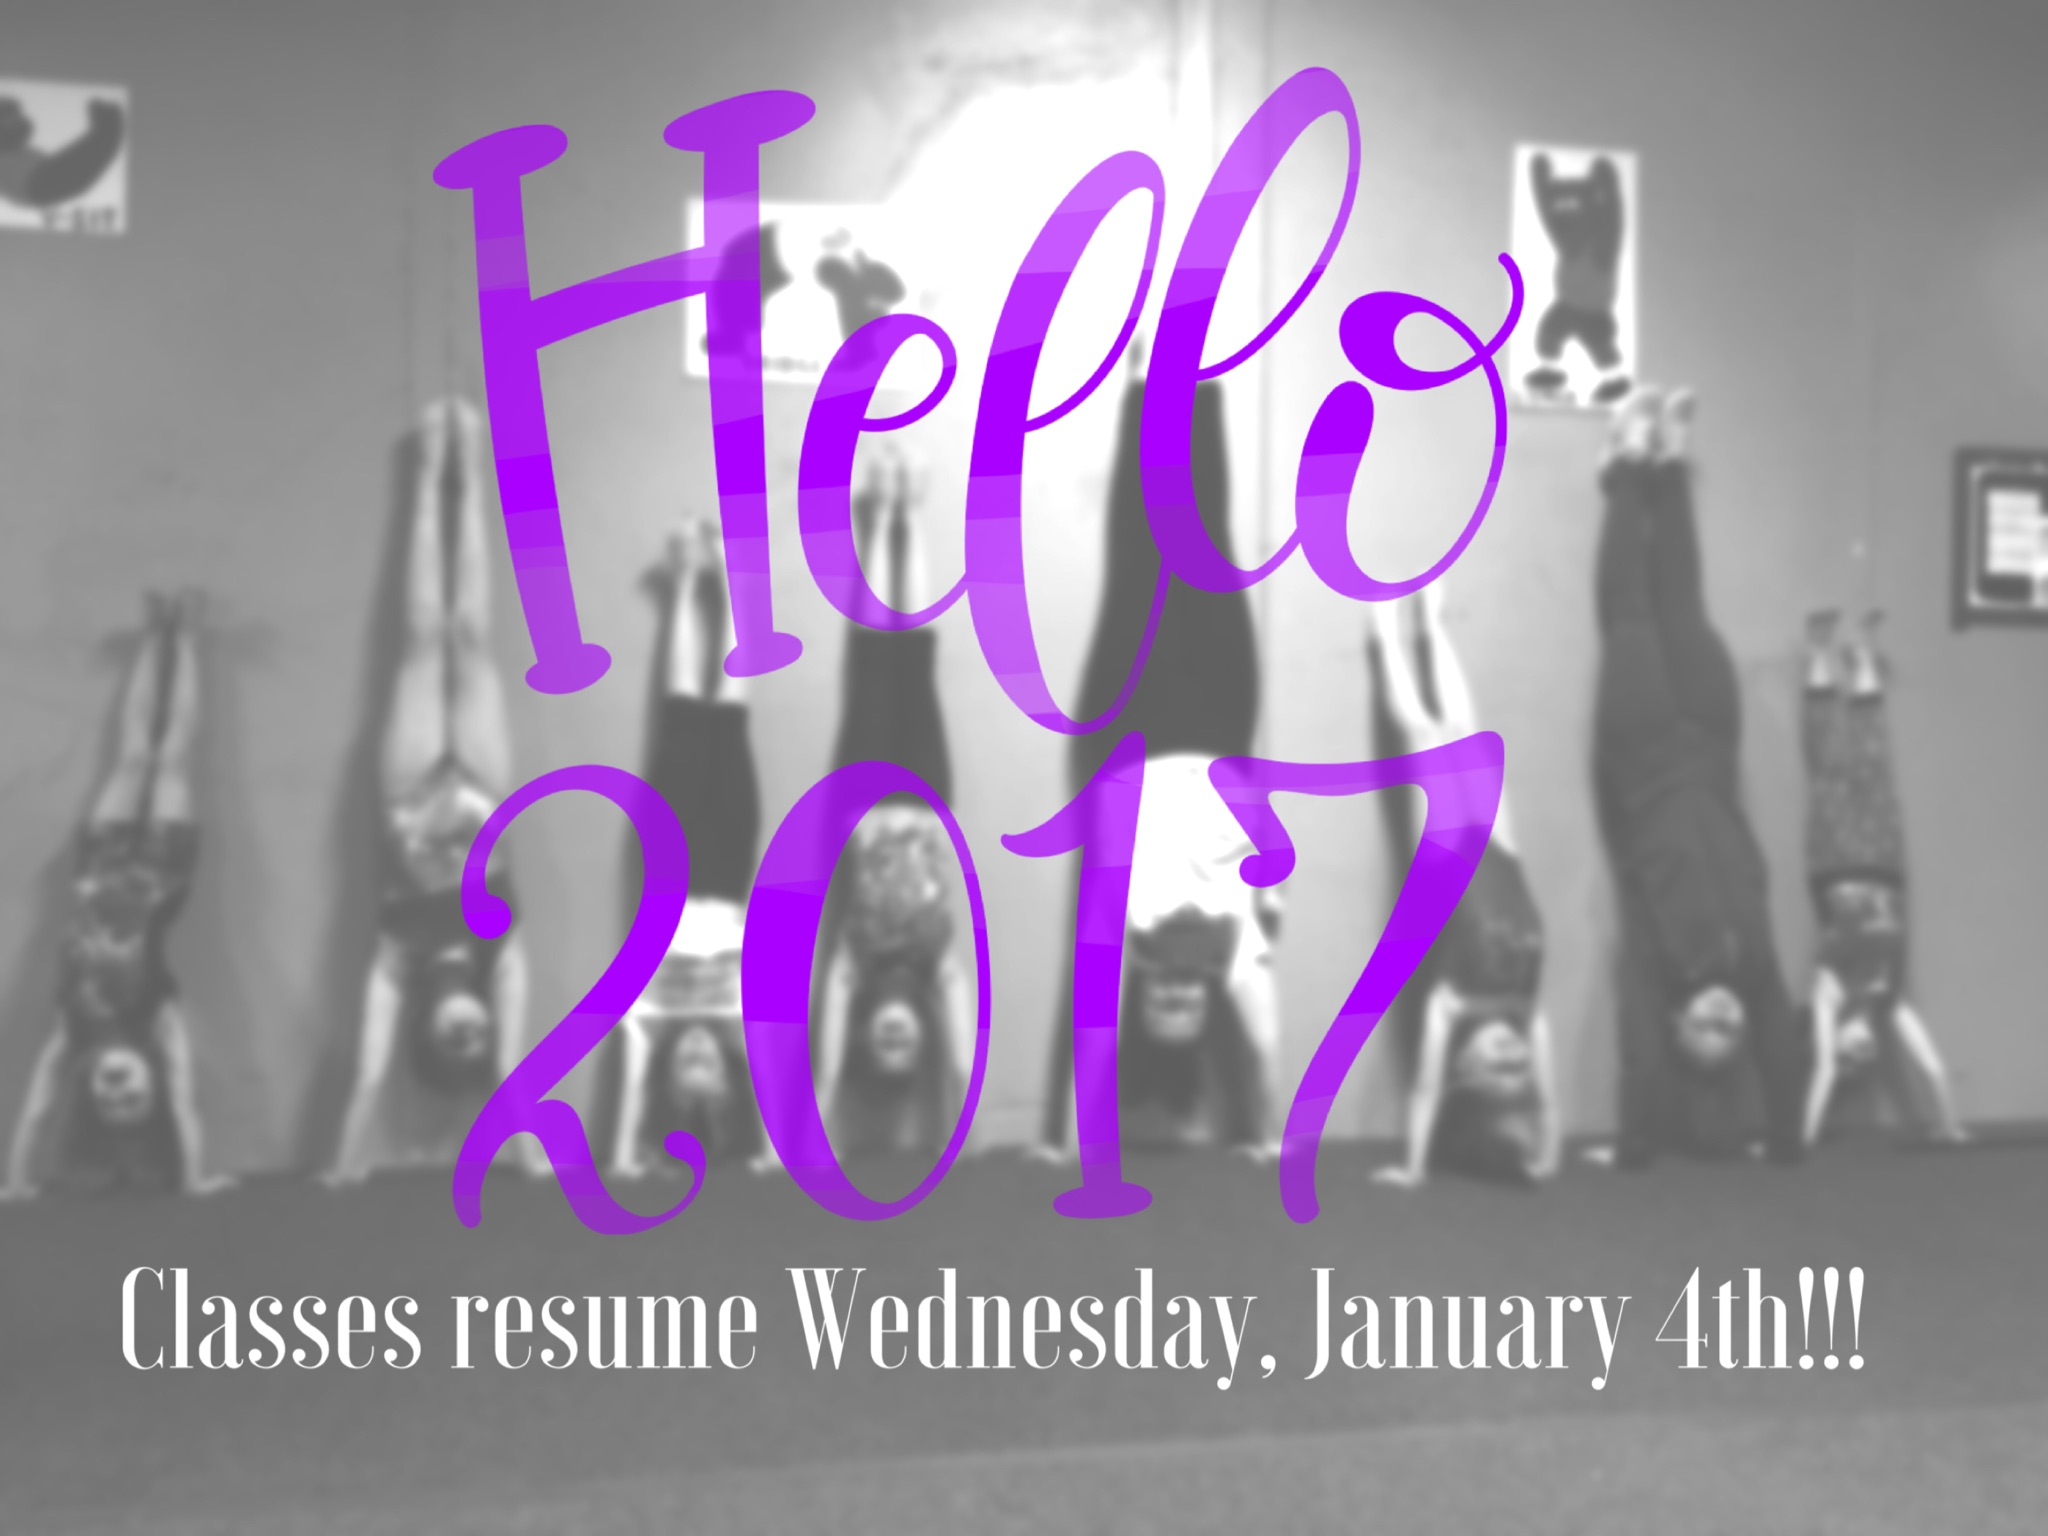 Hello 2017 classes resume Wednesday, January 4th!!!